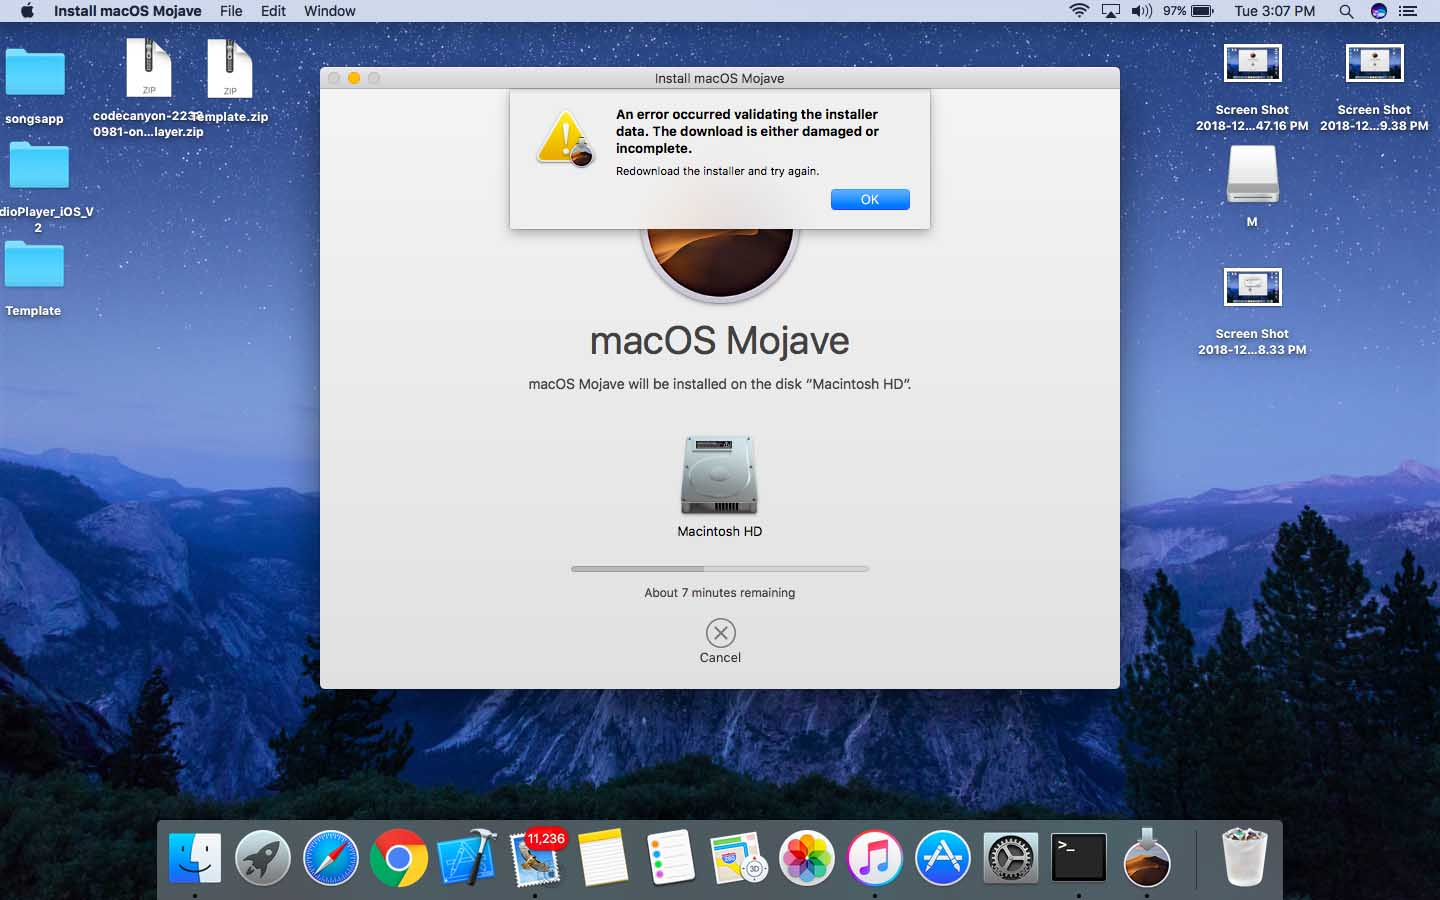 Solved] An Error Occurred Validating the installer data - macOS Mojave